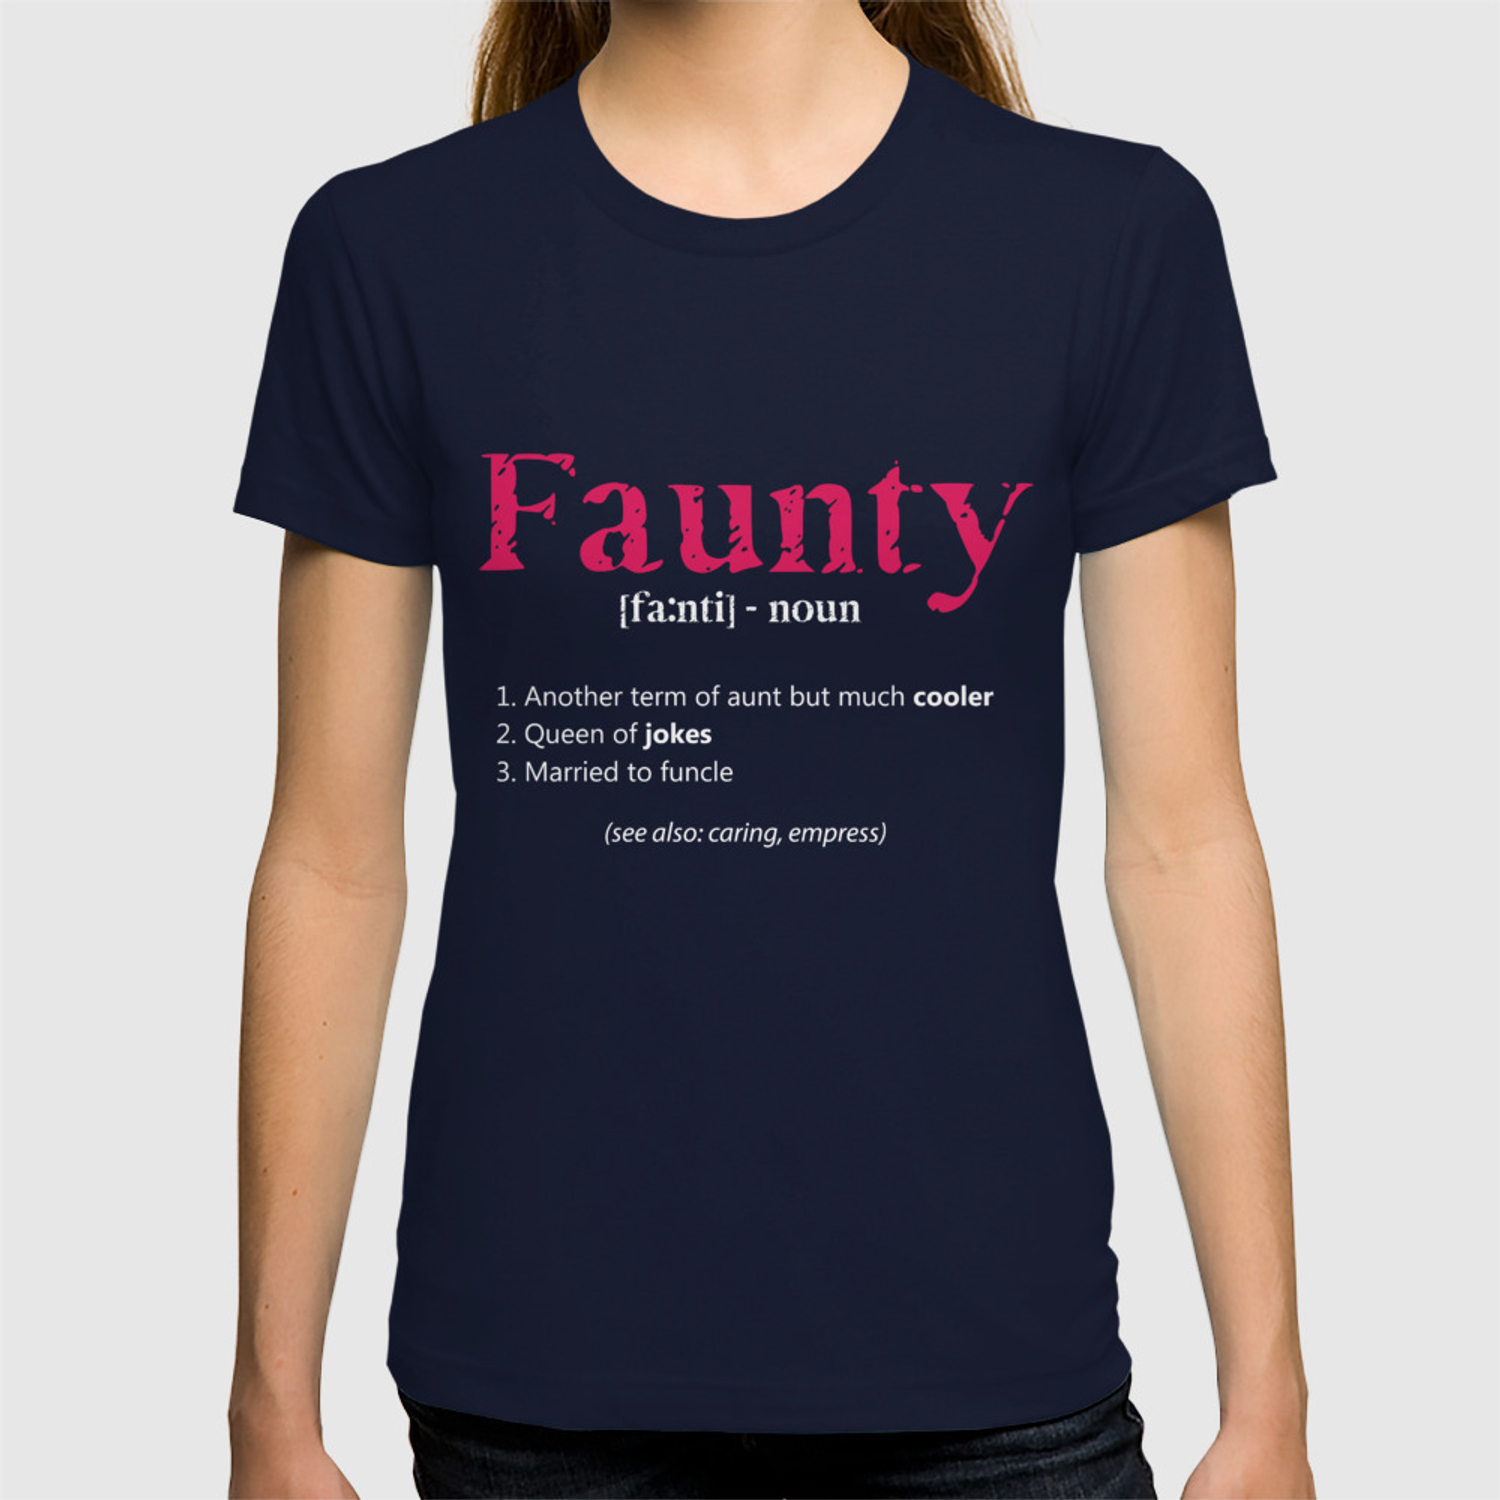 80b6424448 Funtie Definition Aunt T Shirt For Women Auntie Source · Aunt T Shirt Funny  Aunt Definition Tee Faunty Aunty Gift T shirt by